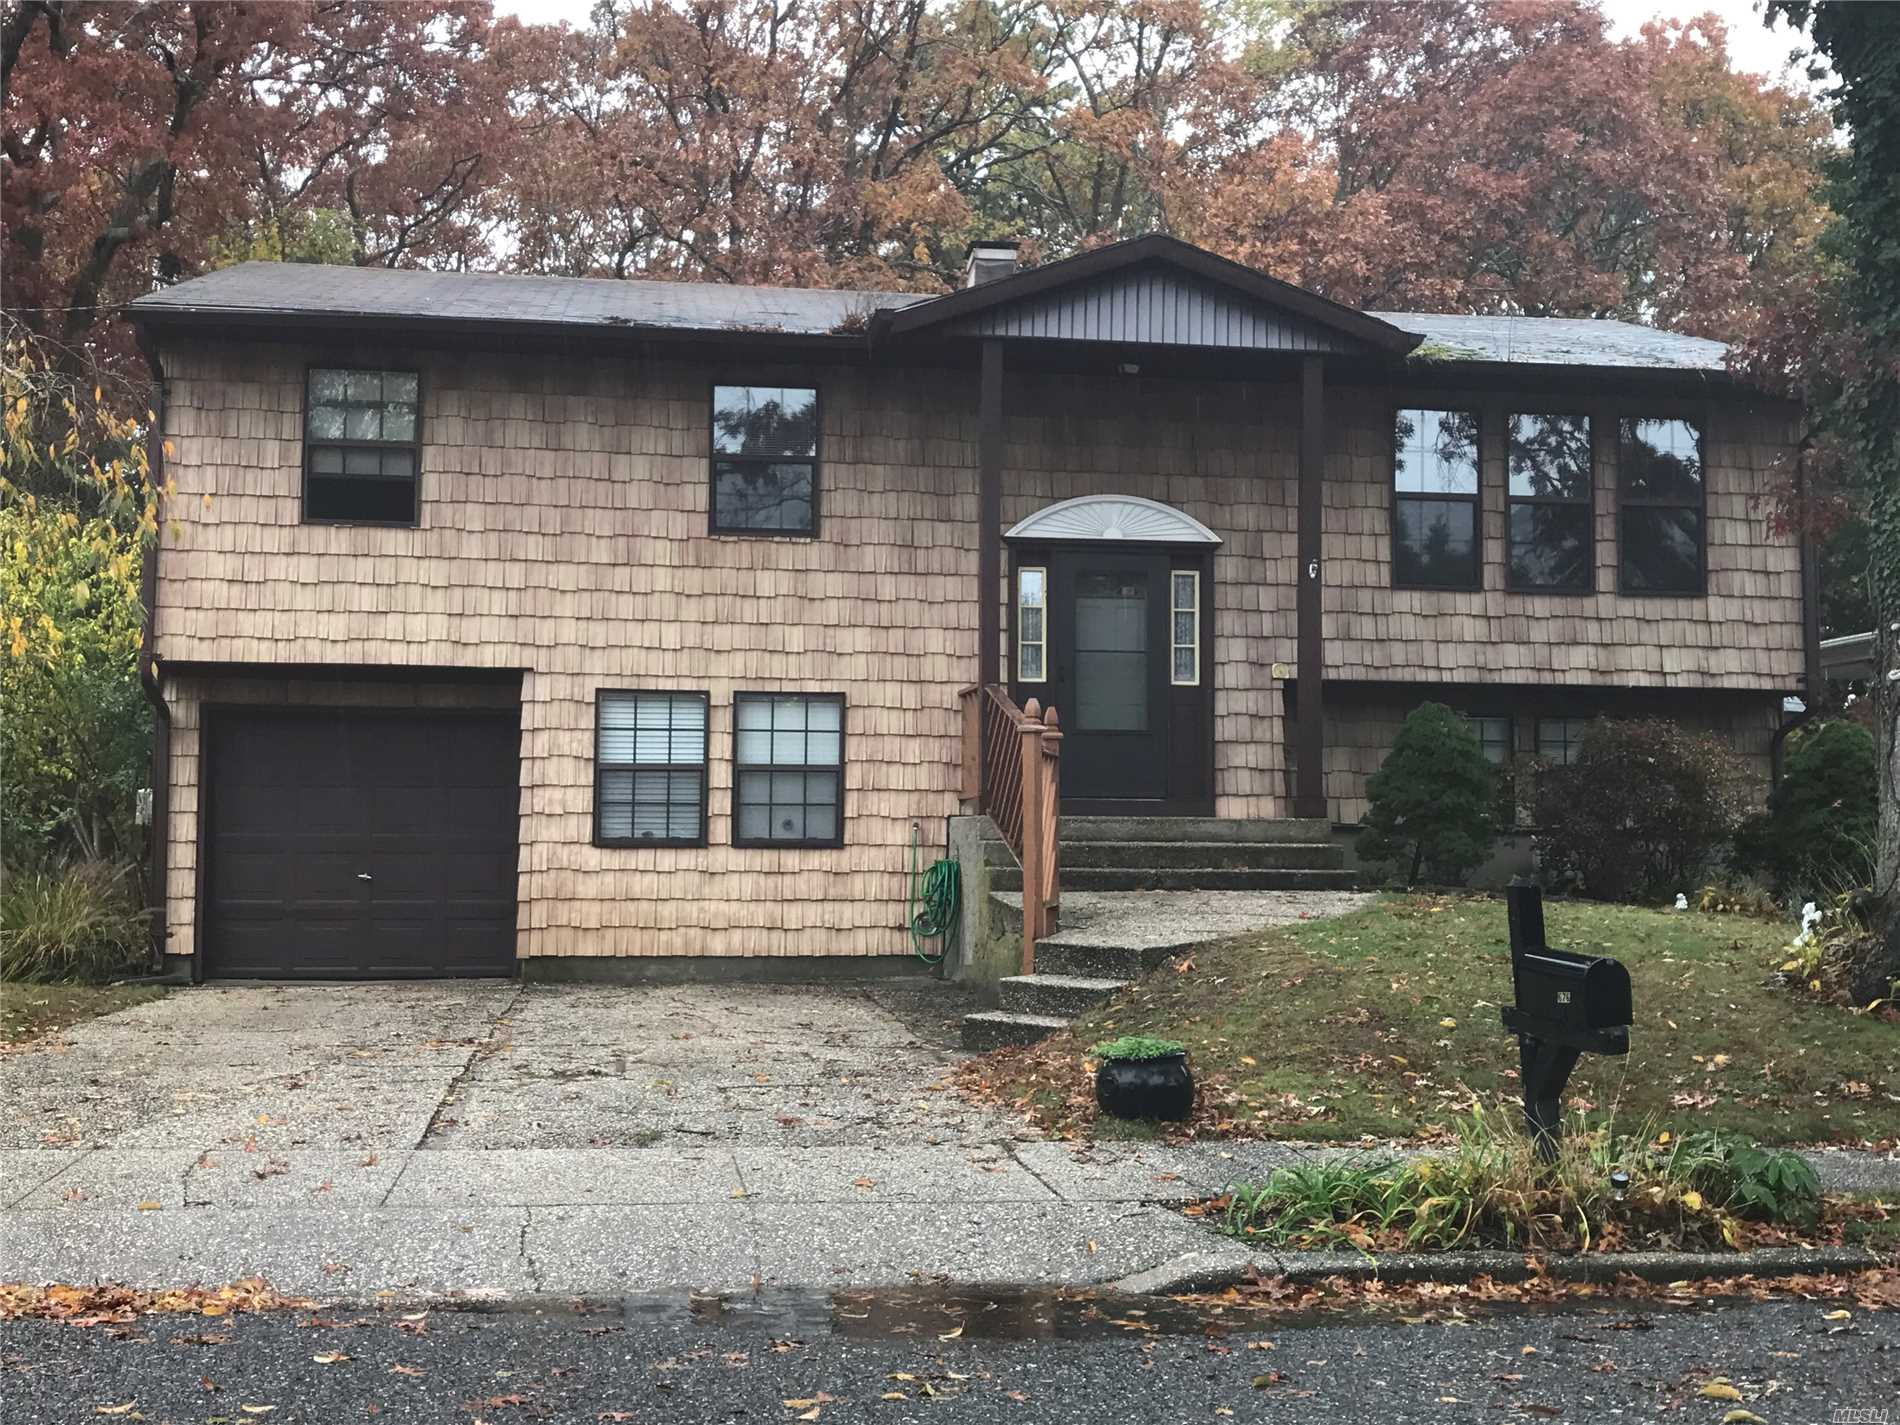 Large Rooms With Lots Of Room! Accessory Apartment With Proper Permits. Fenced Yard. Bring Your Decorating Ideas!